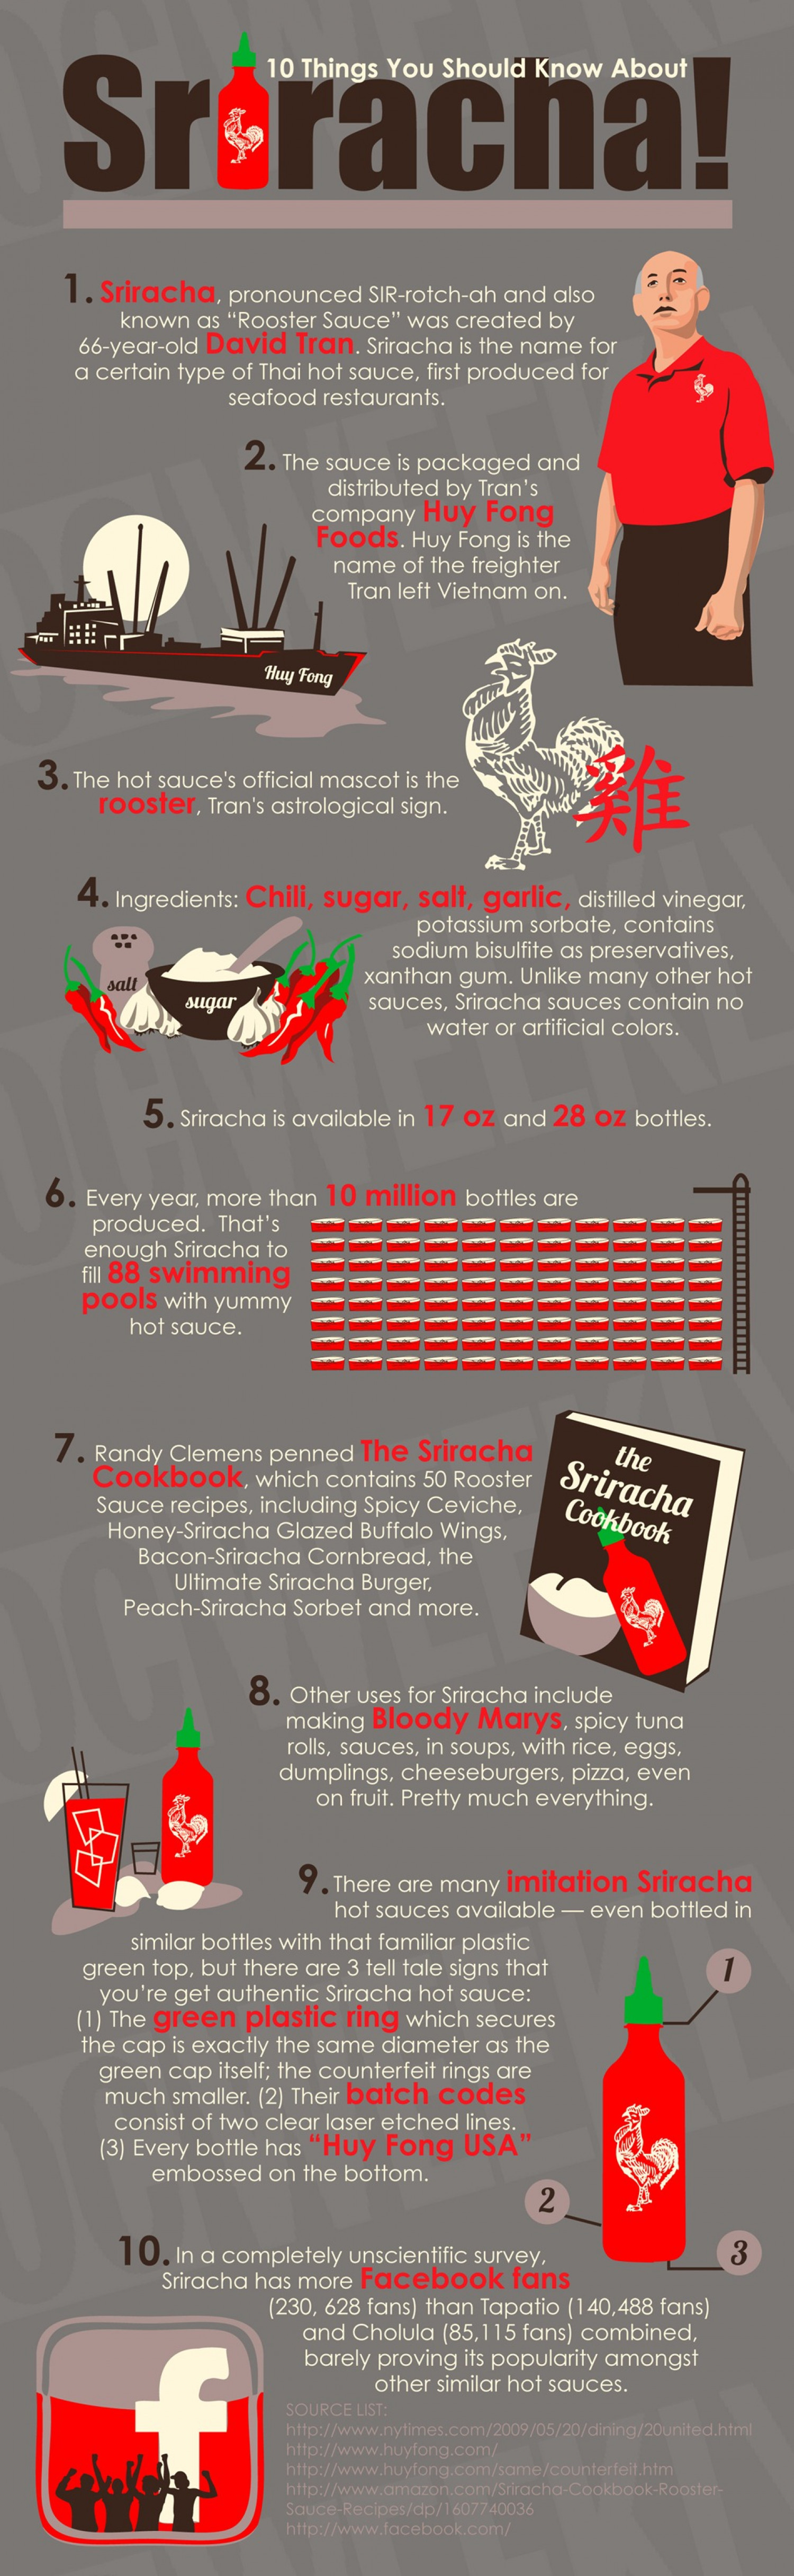 10 Things You Should Know About Sriracha Infographic